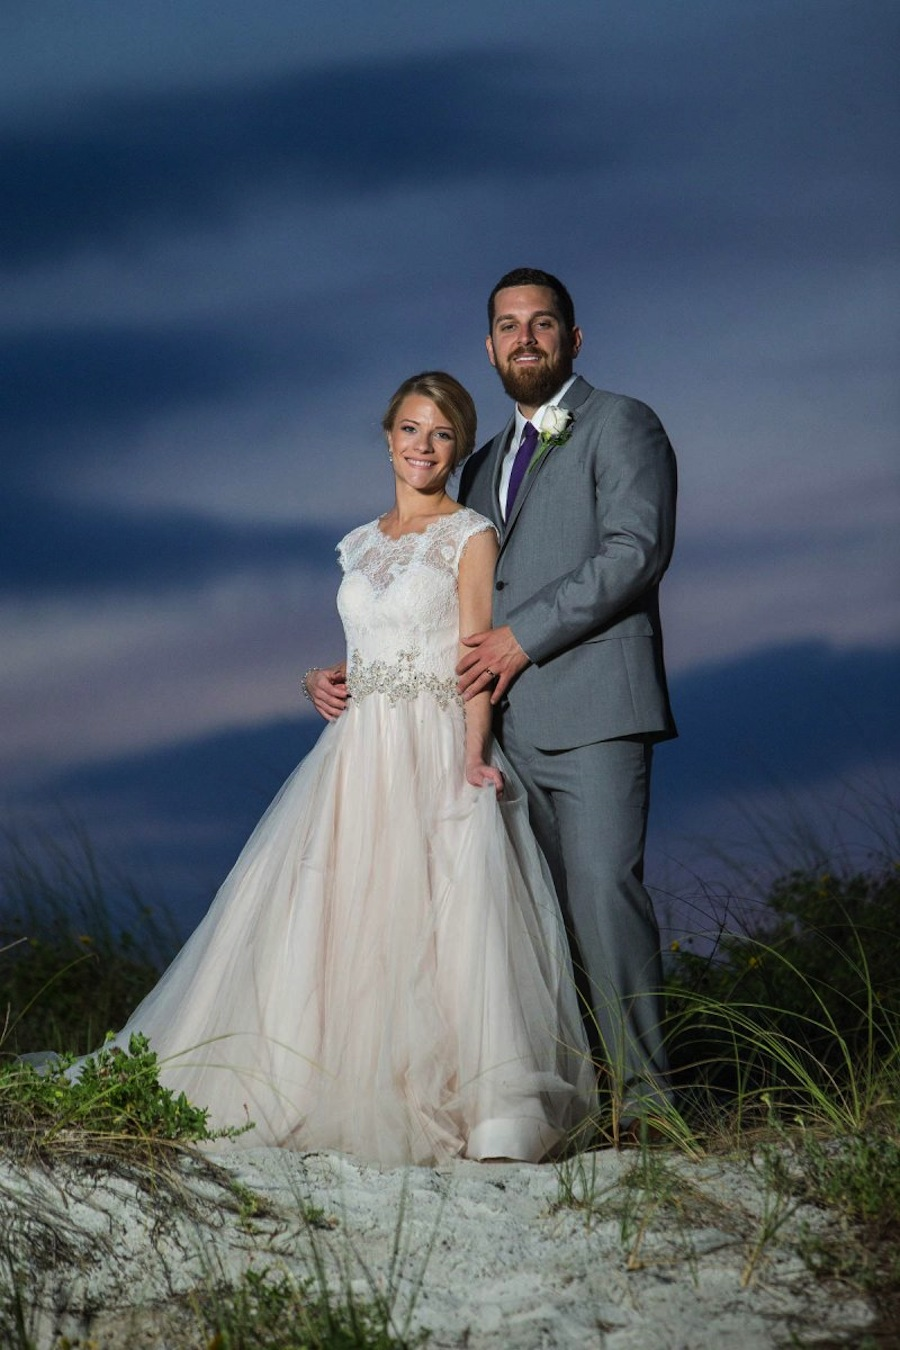 Clearwater Beach Bride and Groom Wedding Portrait | Jeff Mason Photography